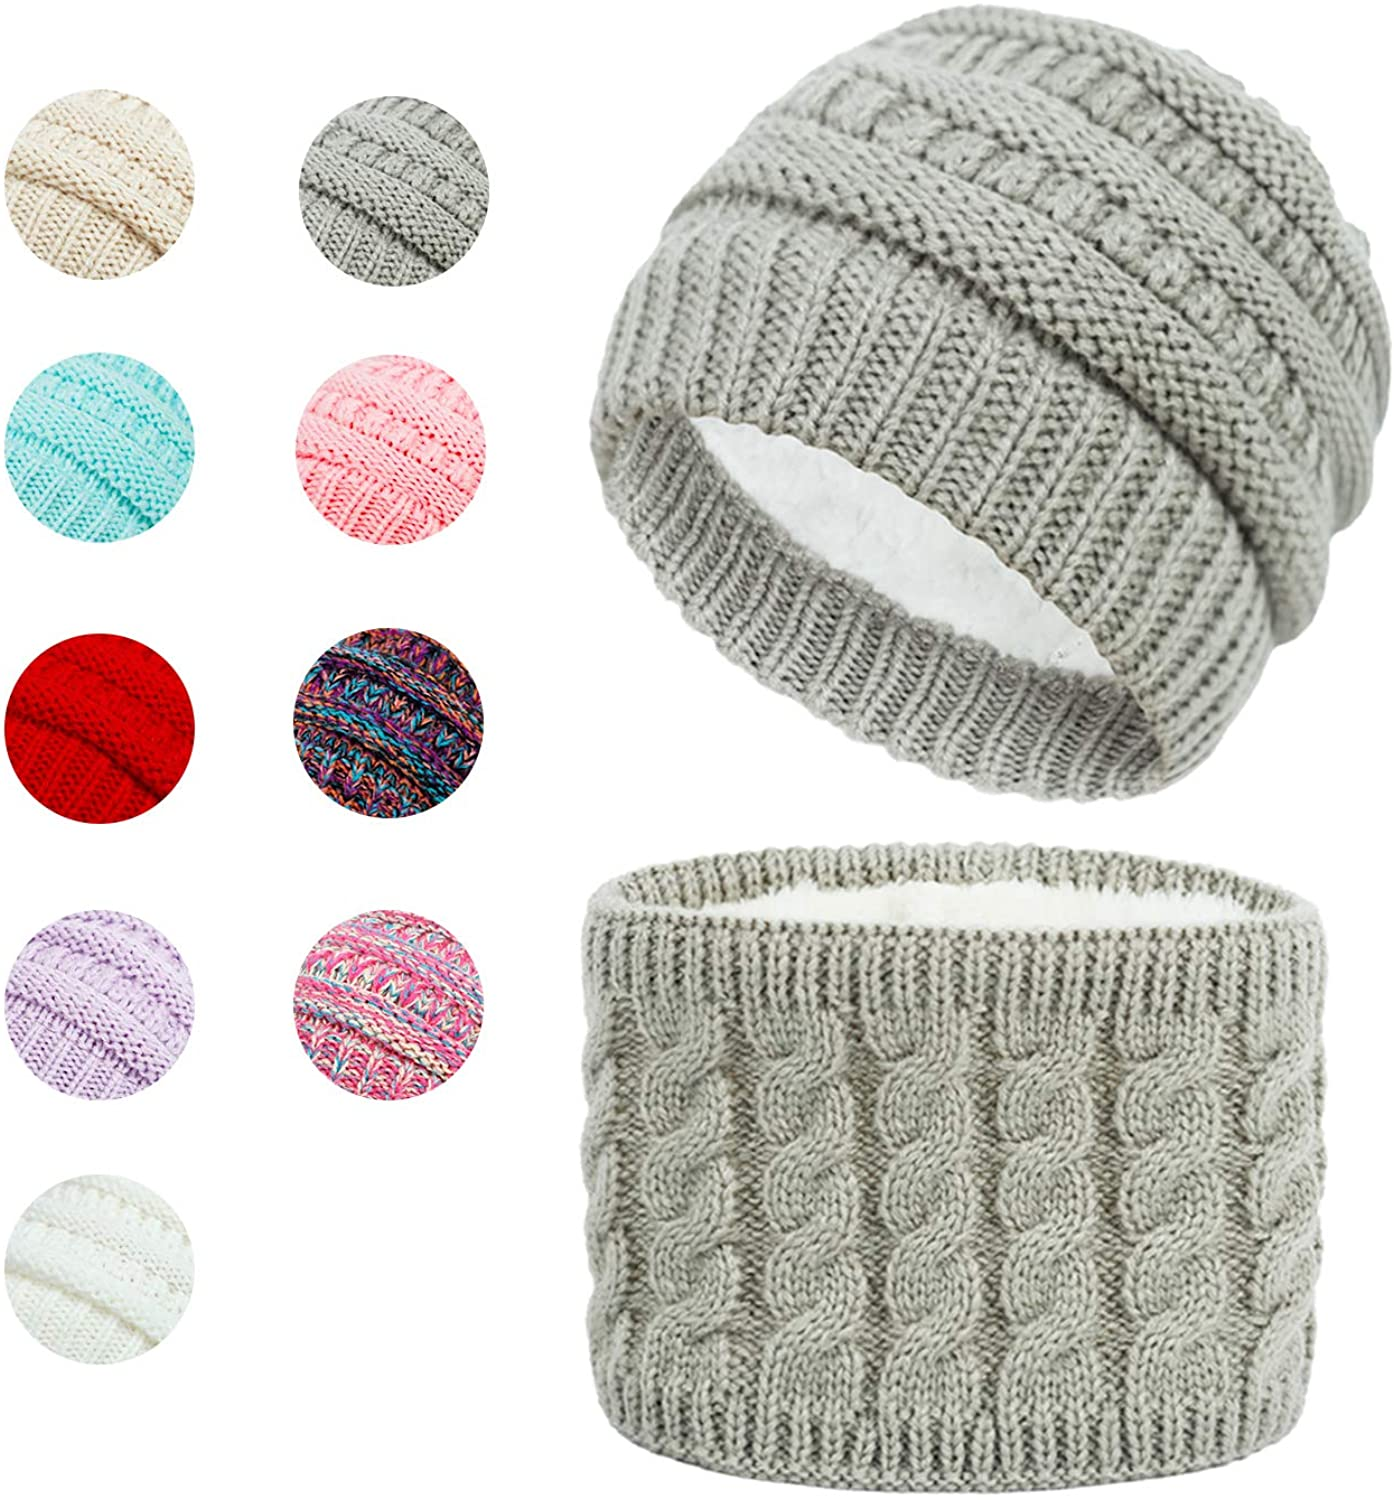 Hzran Winter Hat Scarf Set for Toddler Baby Boy & Girl, Warm Knitted Fleece Lined Baby Beanie Hat